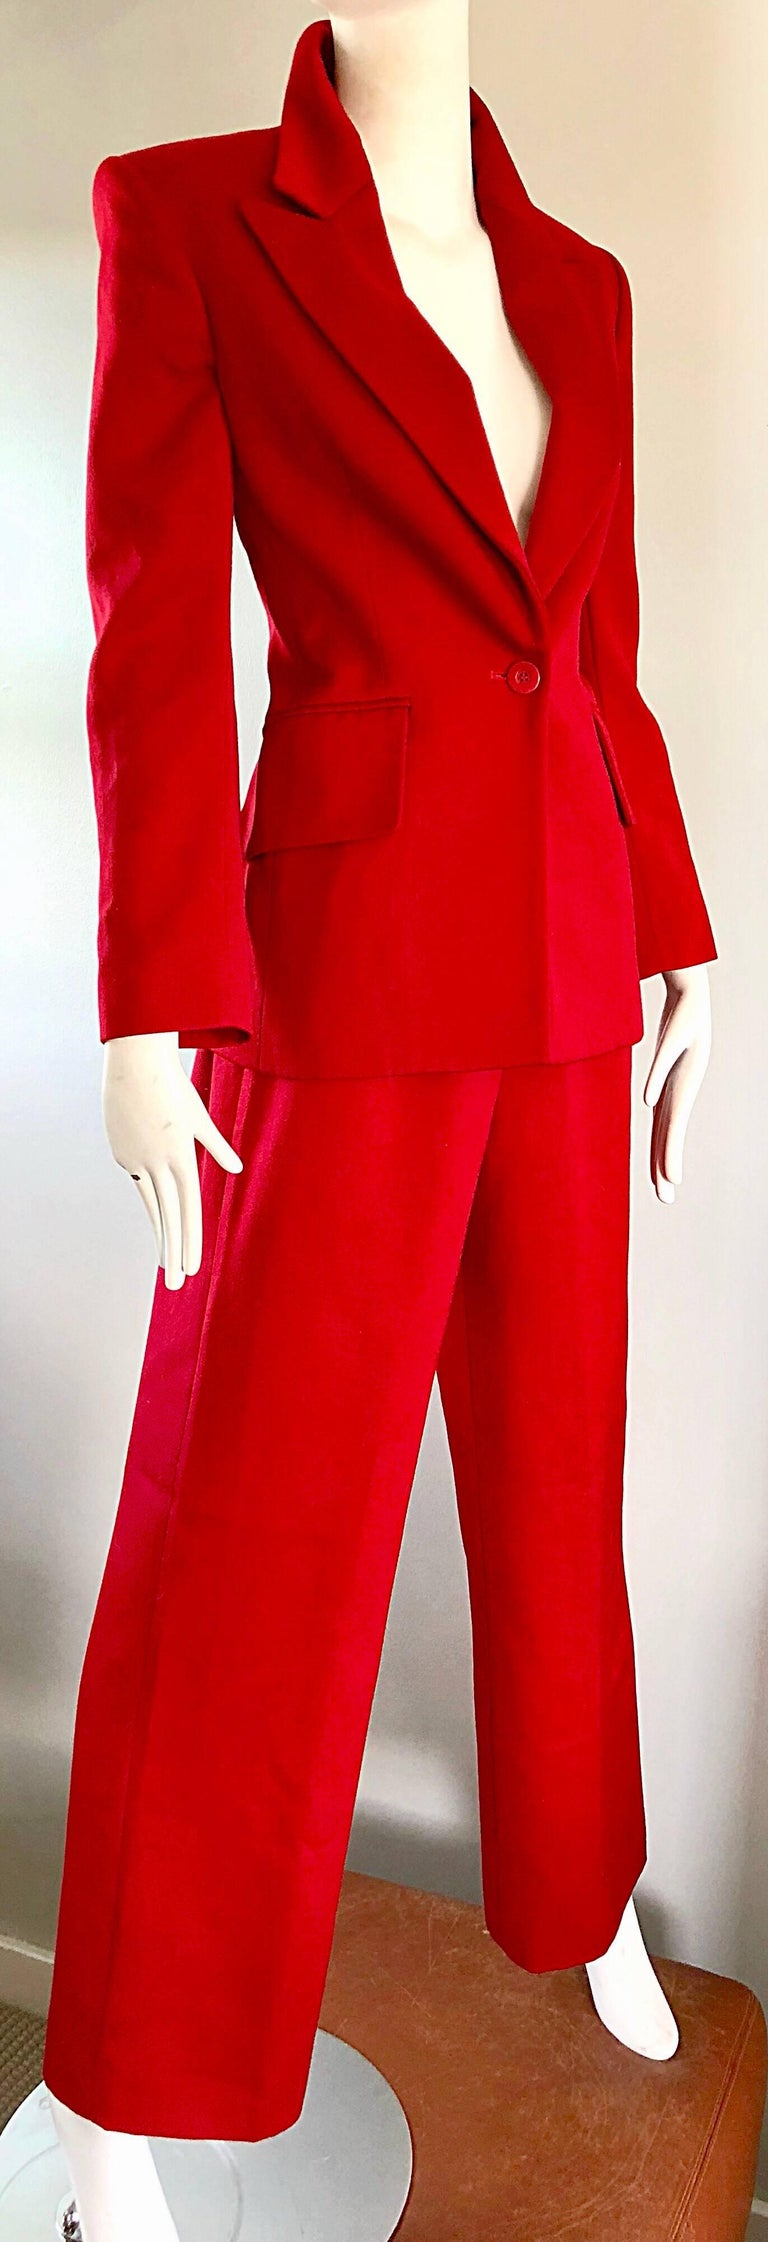 Isaac Mizrahi Vintage 1990s Lipstick Red Wide Leg Wool Le Smoking 90s Pants Suit 3